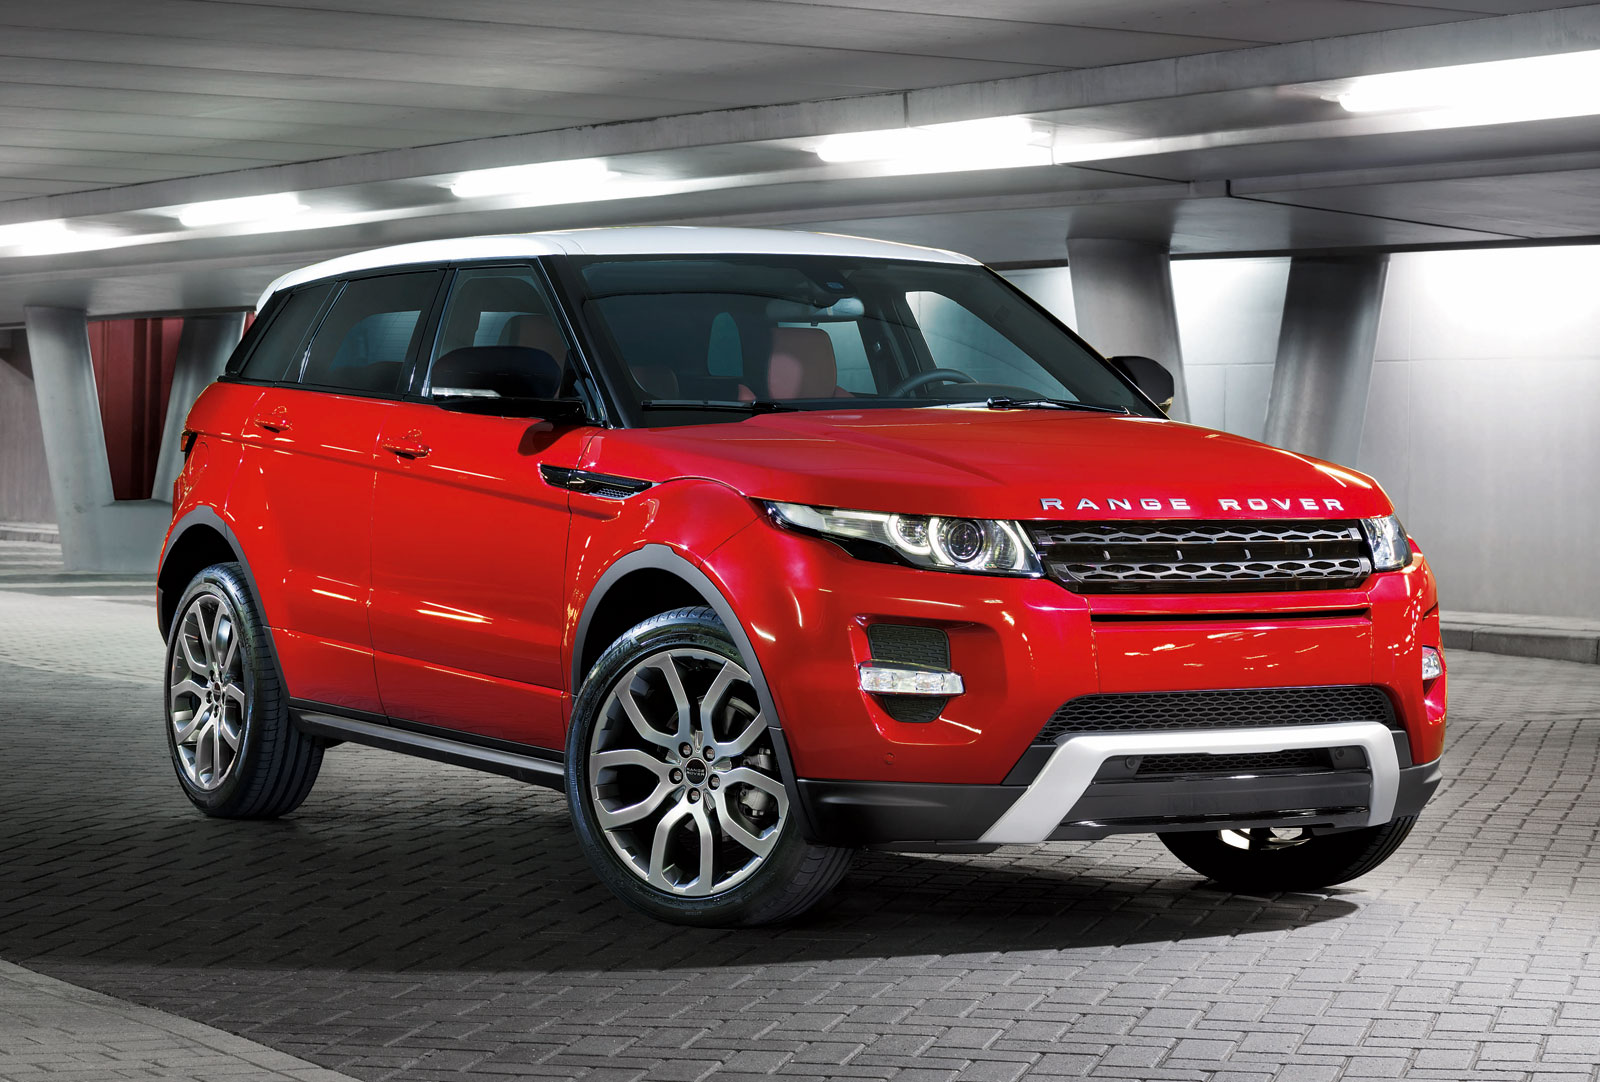 2012 land rover range rover evoque 5 door official photos. Black Bedroom Furniture Sets. Home Design Ideas